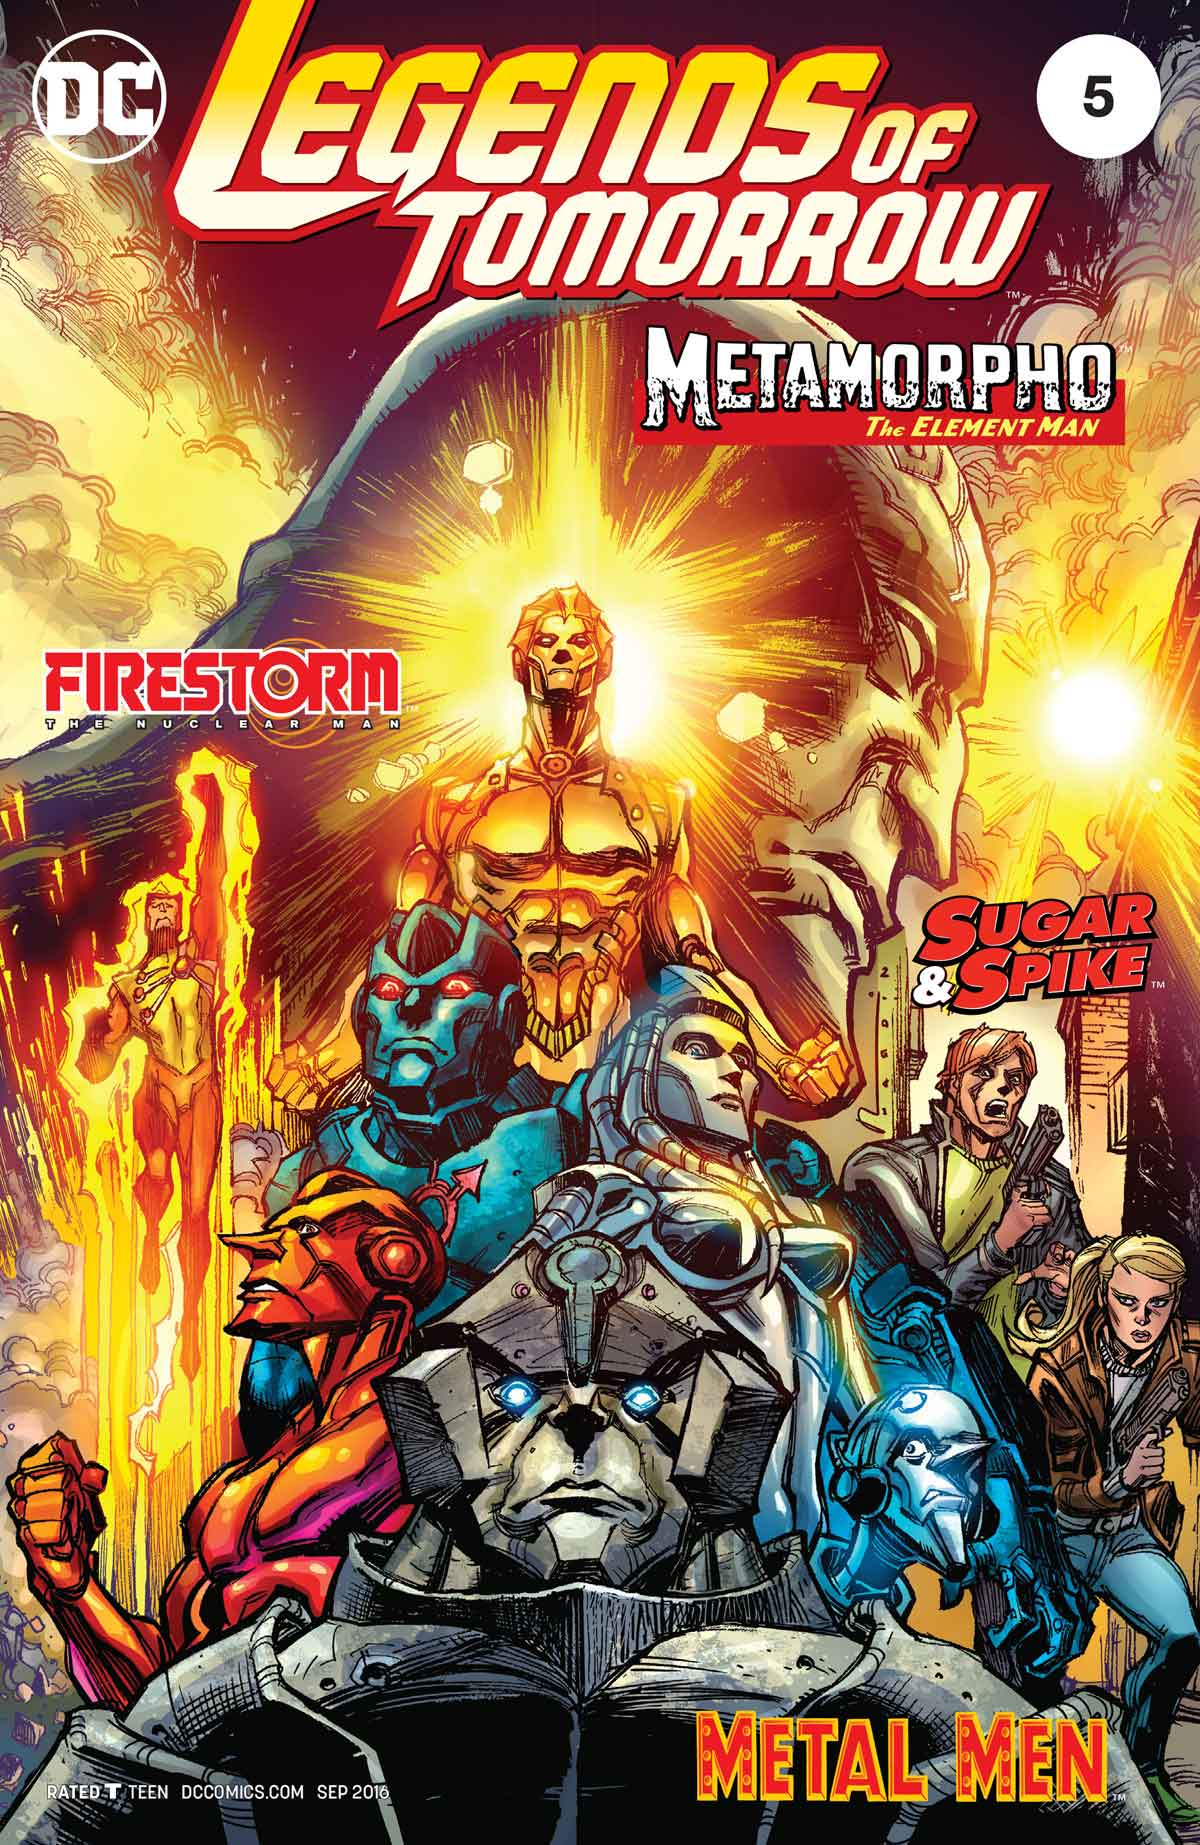 Firestorm in LEGENDS OF TOMORROW #5